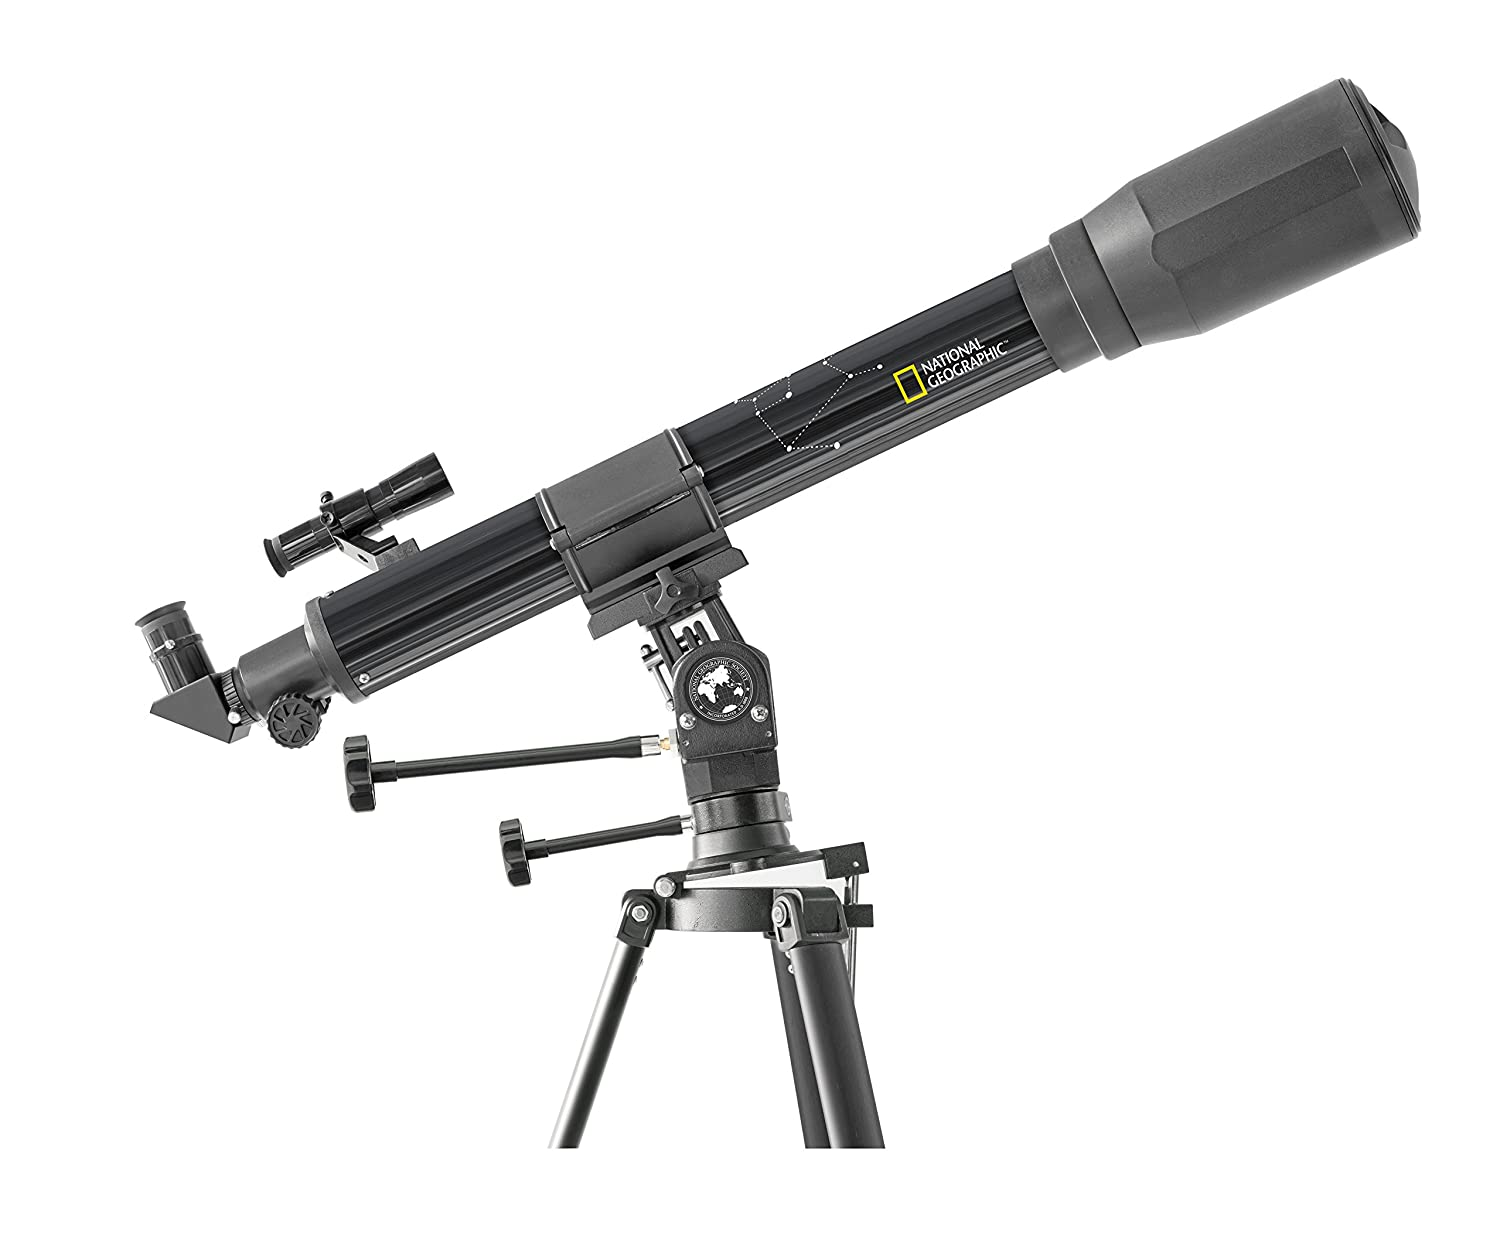 National Geographic Telescopio rifrattore 70/900 con supporto multifunzione Manfrotto S.p.A. 9071000